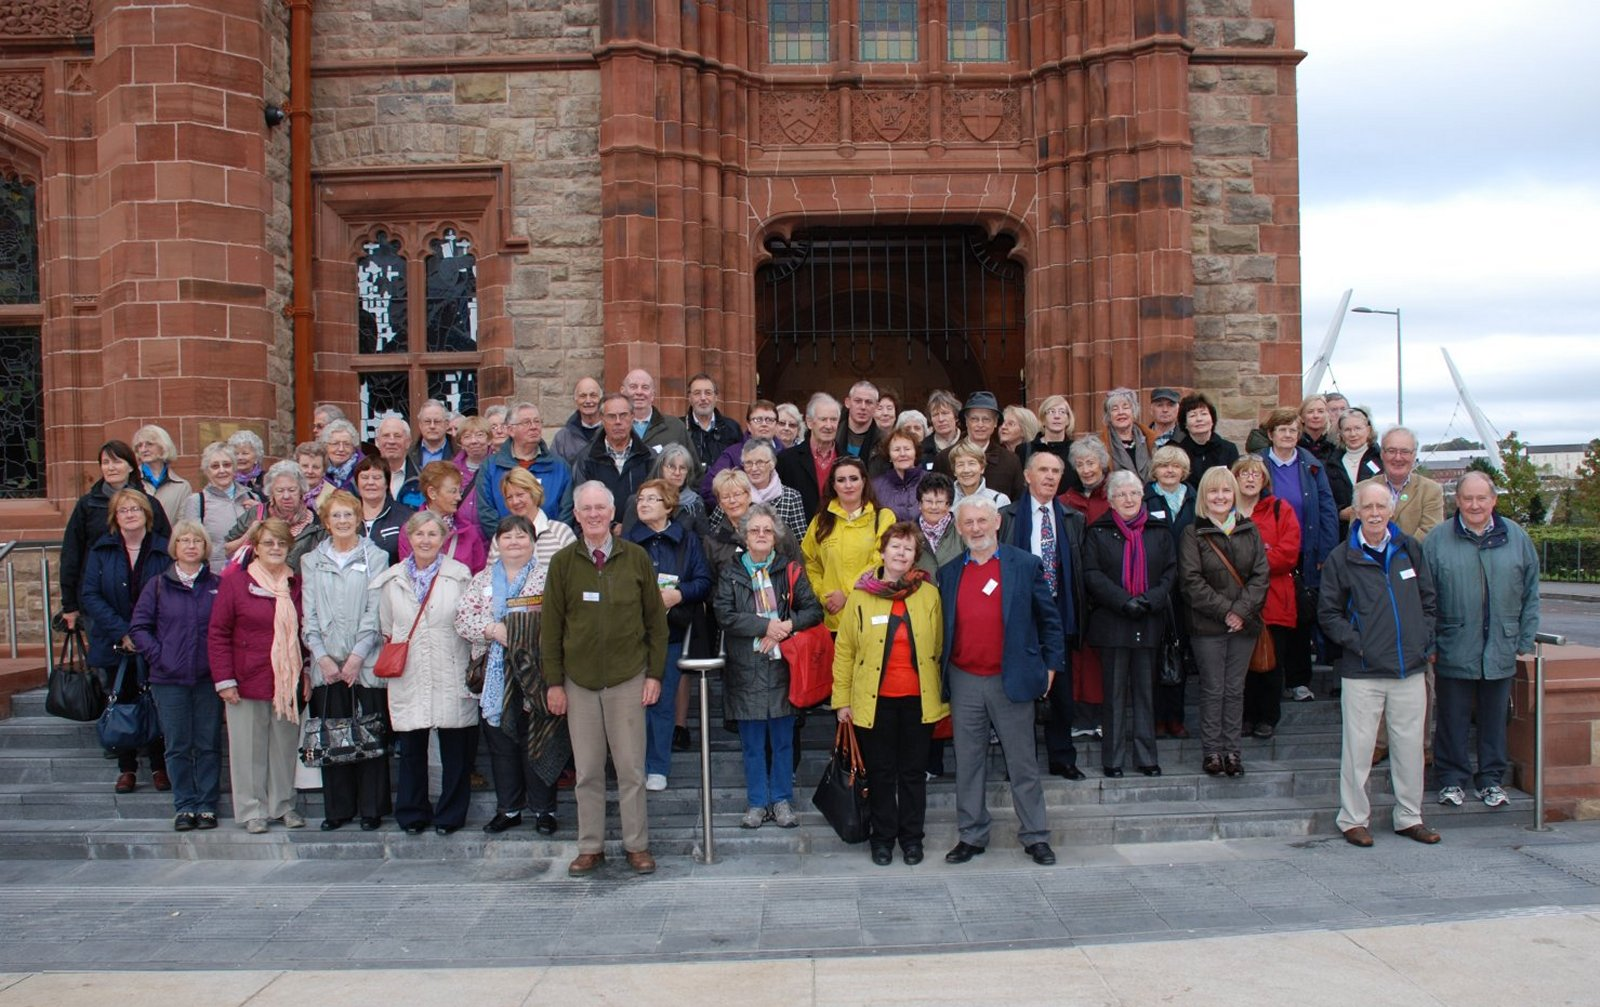 Both groups at the Guildhall